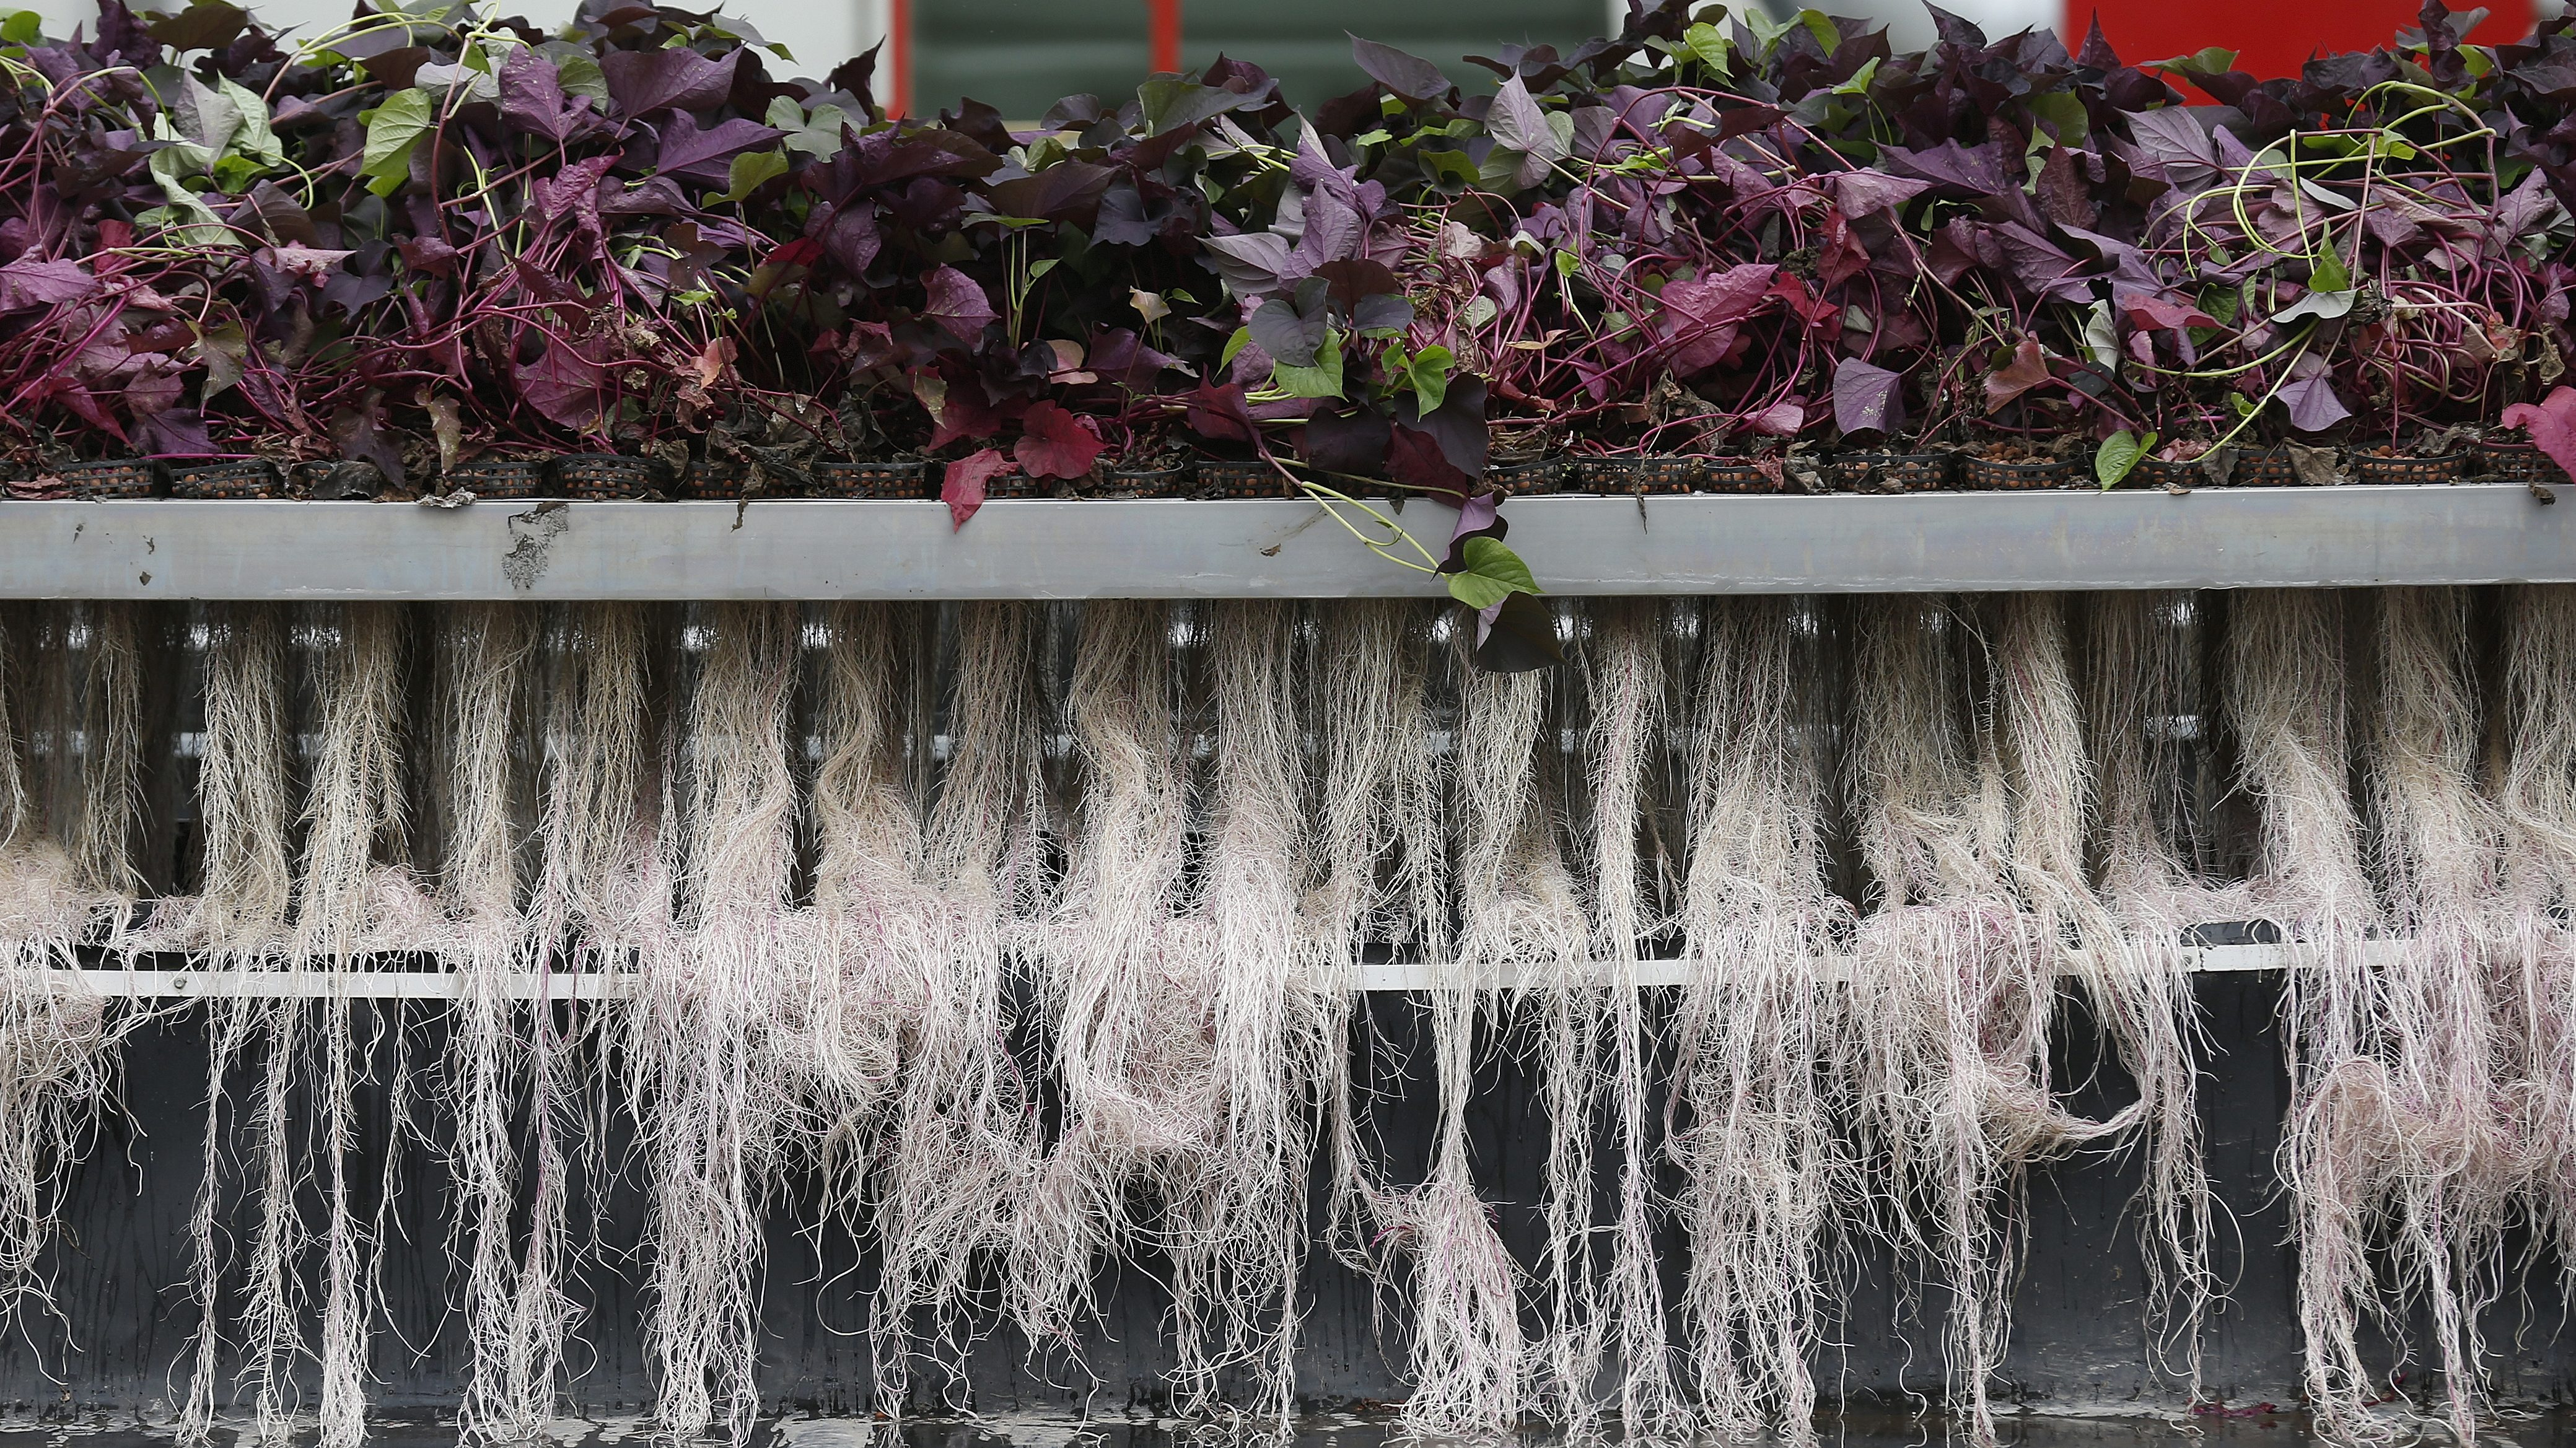 Plants roots are pictured during an exudation process at the Plant Advanced Technologies (PAT) company greenhouse in Laronxe near Nancy, Eastern France, June 19, 2015.